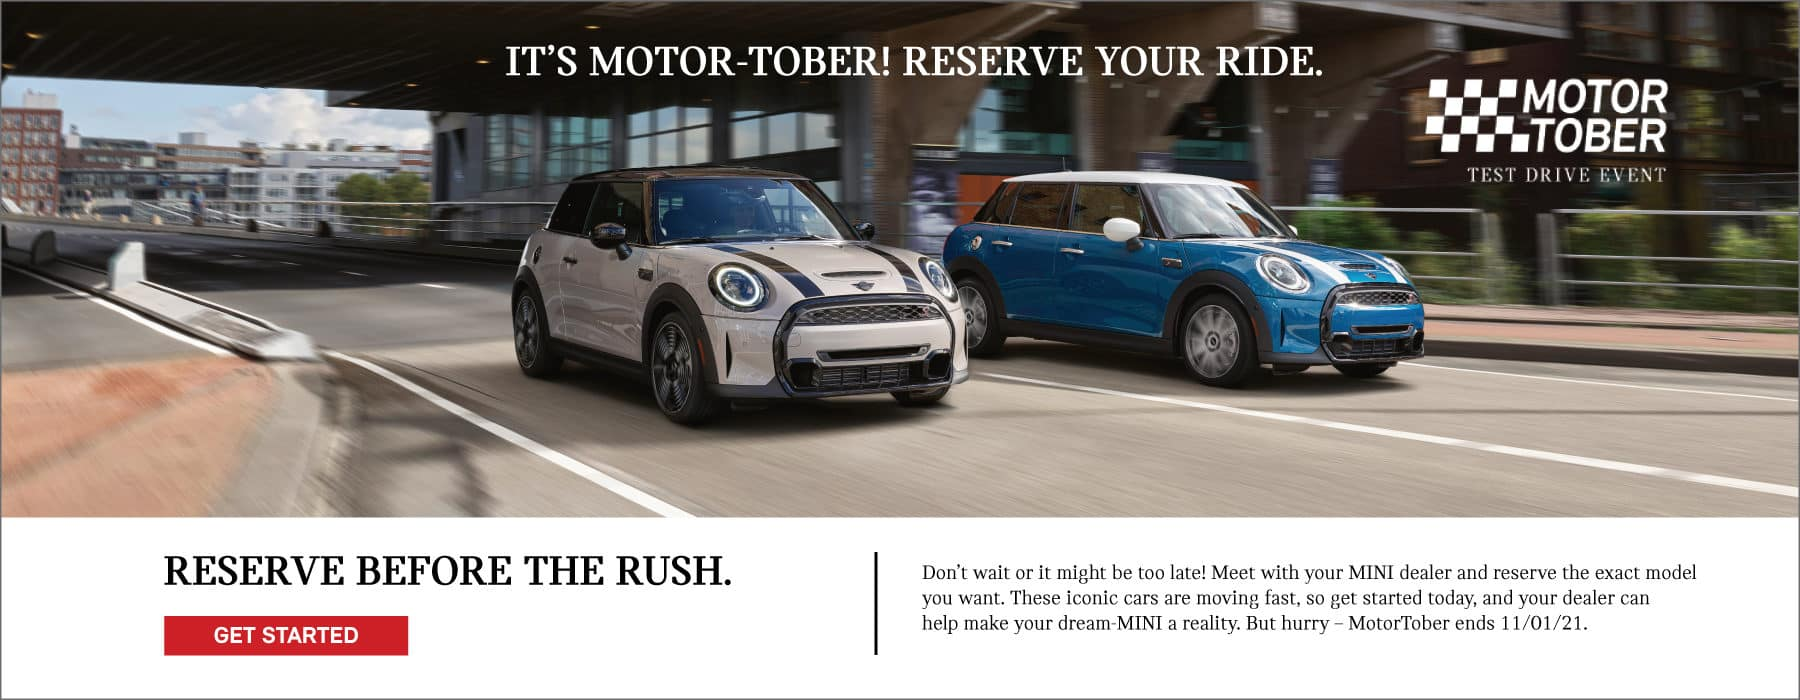 IT'S MOTOR-TOBER! RESERVE YOUR RIDE BEFORE THE RUSH. CLICK TO GET STARTED